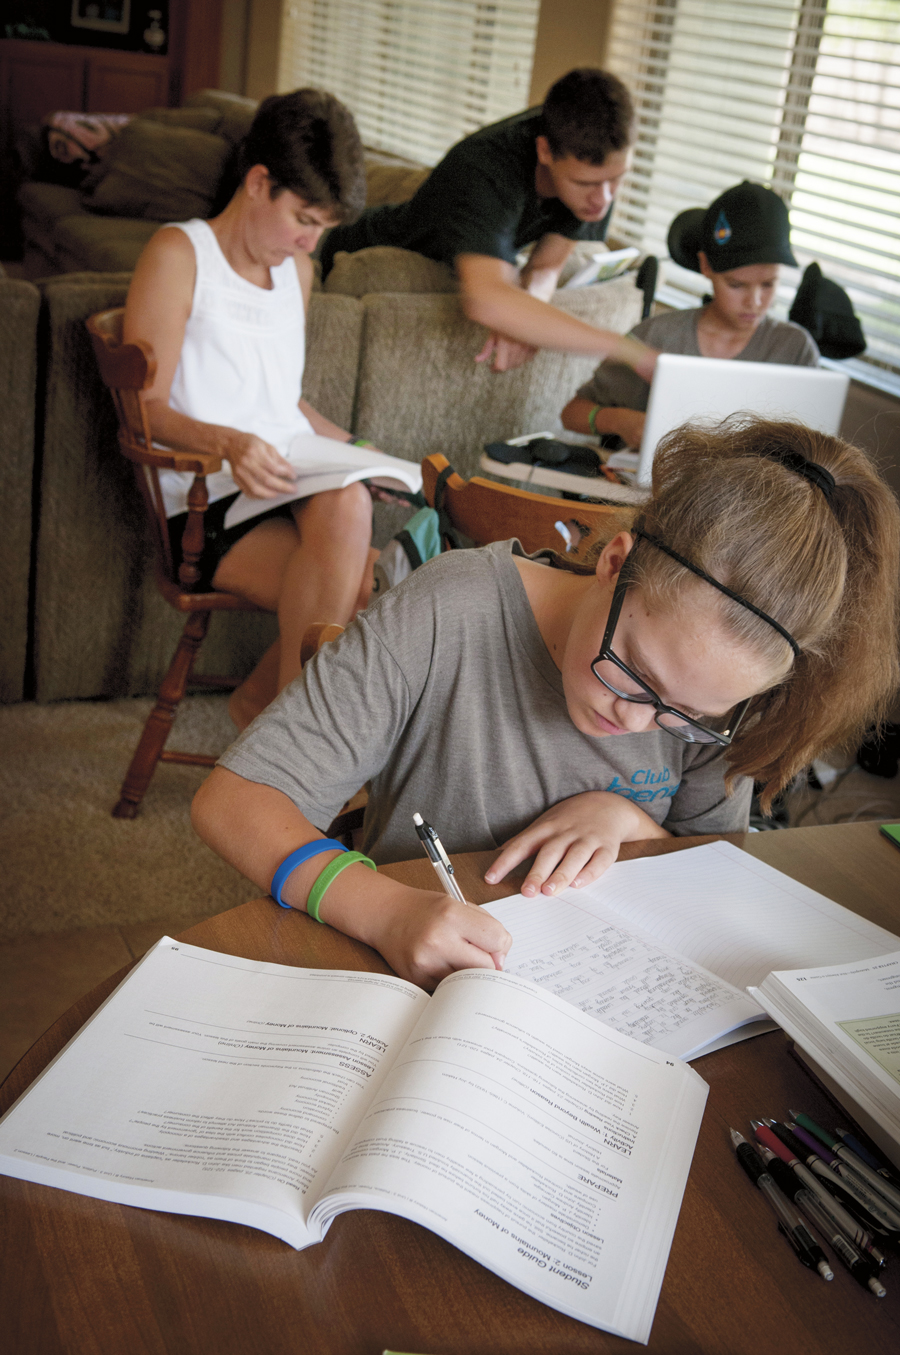 Above: Campbell Faulker (10) attends home school so his family has more flexibility around his health-care needs. Right: Campell's sister, Sage (13) works on her home-school lesson while he tackles a challenging history assignment with help from his mom, Carrie, and education coach and brother Clayton (20).